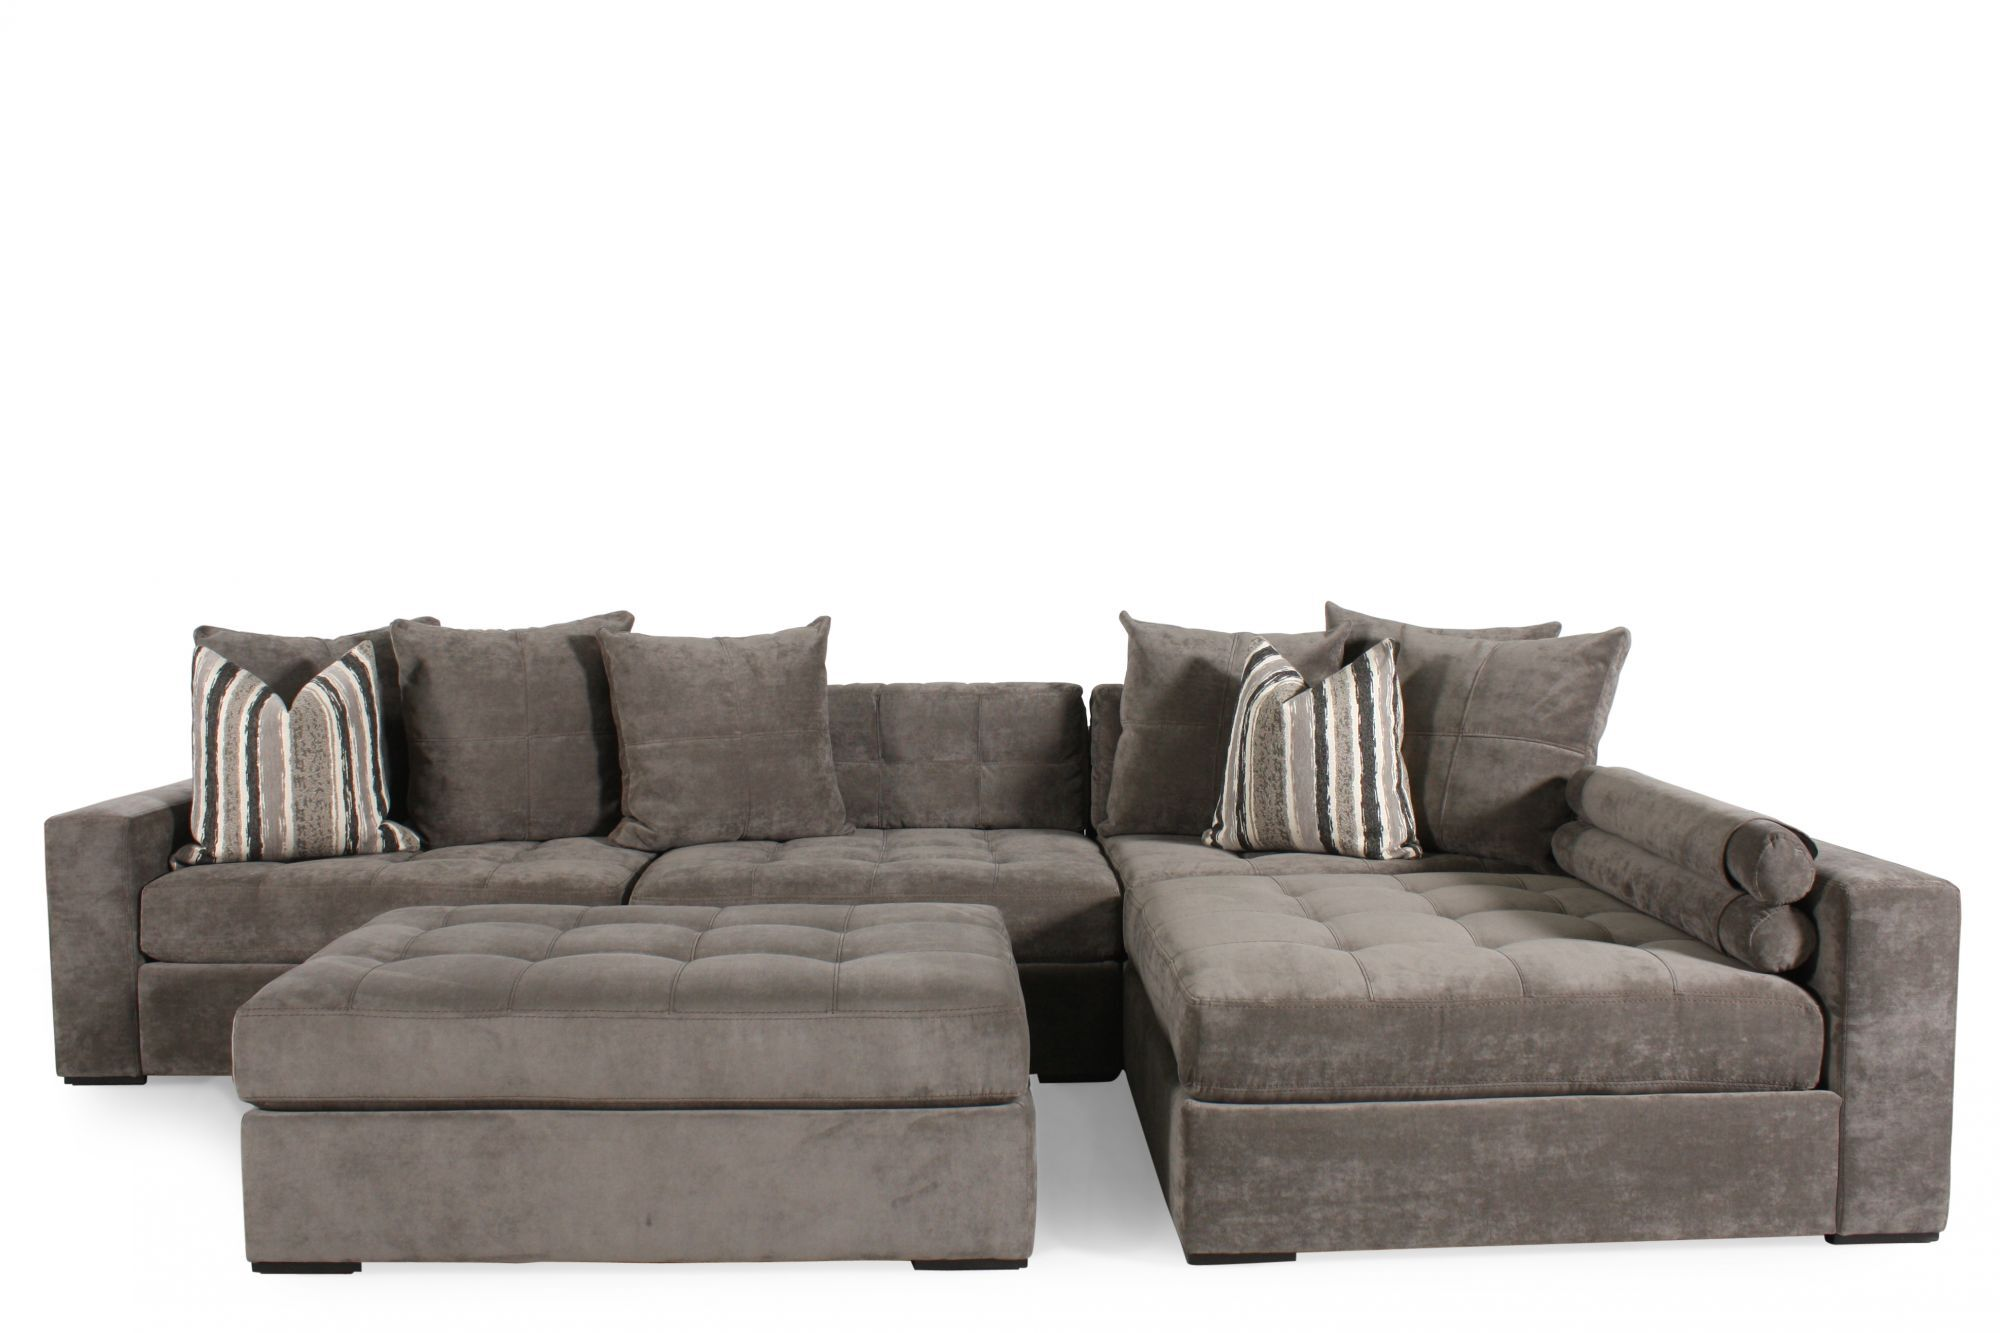 Contemporary Tufted Sectional In Muted Gray ...